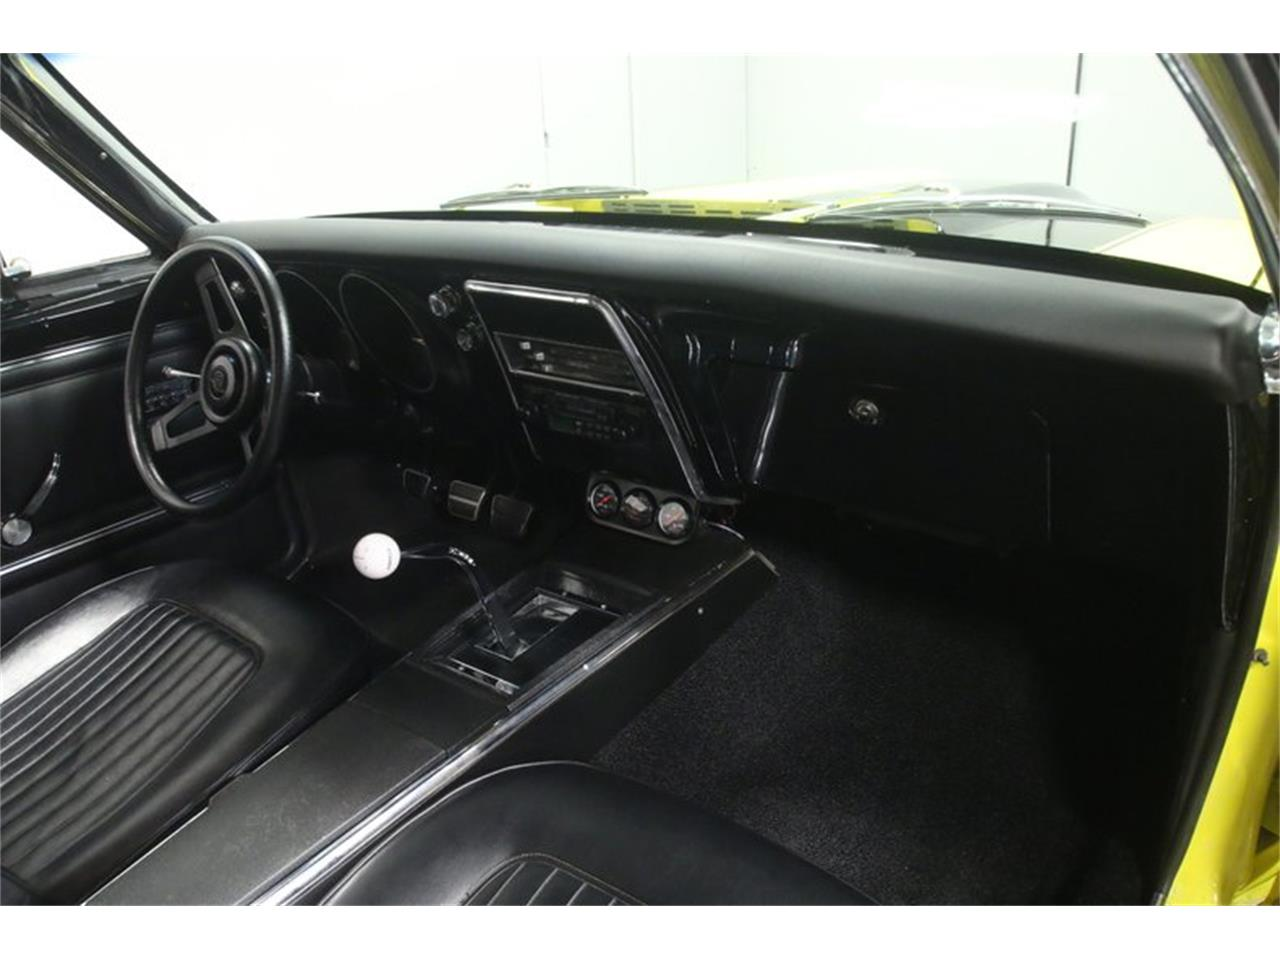 1967 Chevrolet Camaro for sale in Lithia Springs, GA – photo 55